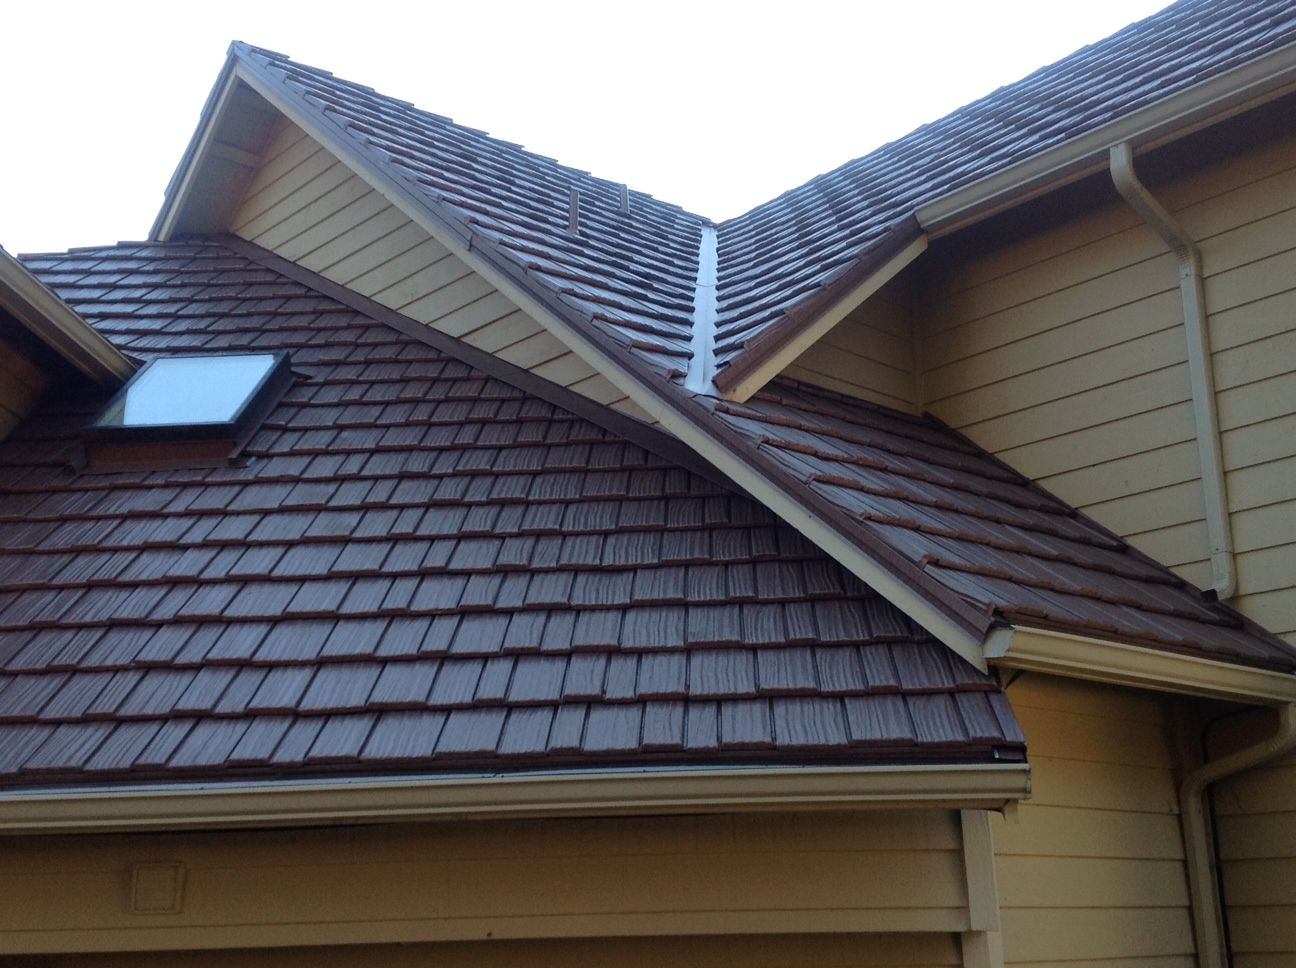 Classic Metal Roofing Country Manor Shake Aged Bronze Wa State Www Rainier View Com Or Www Rvcrblog Com Roofing Metal Roof Roof Colors